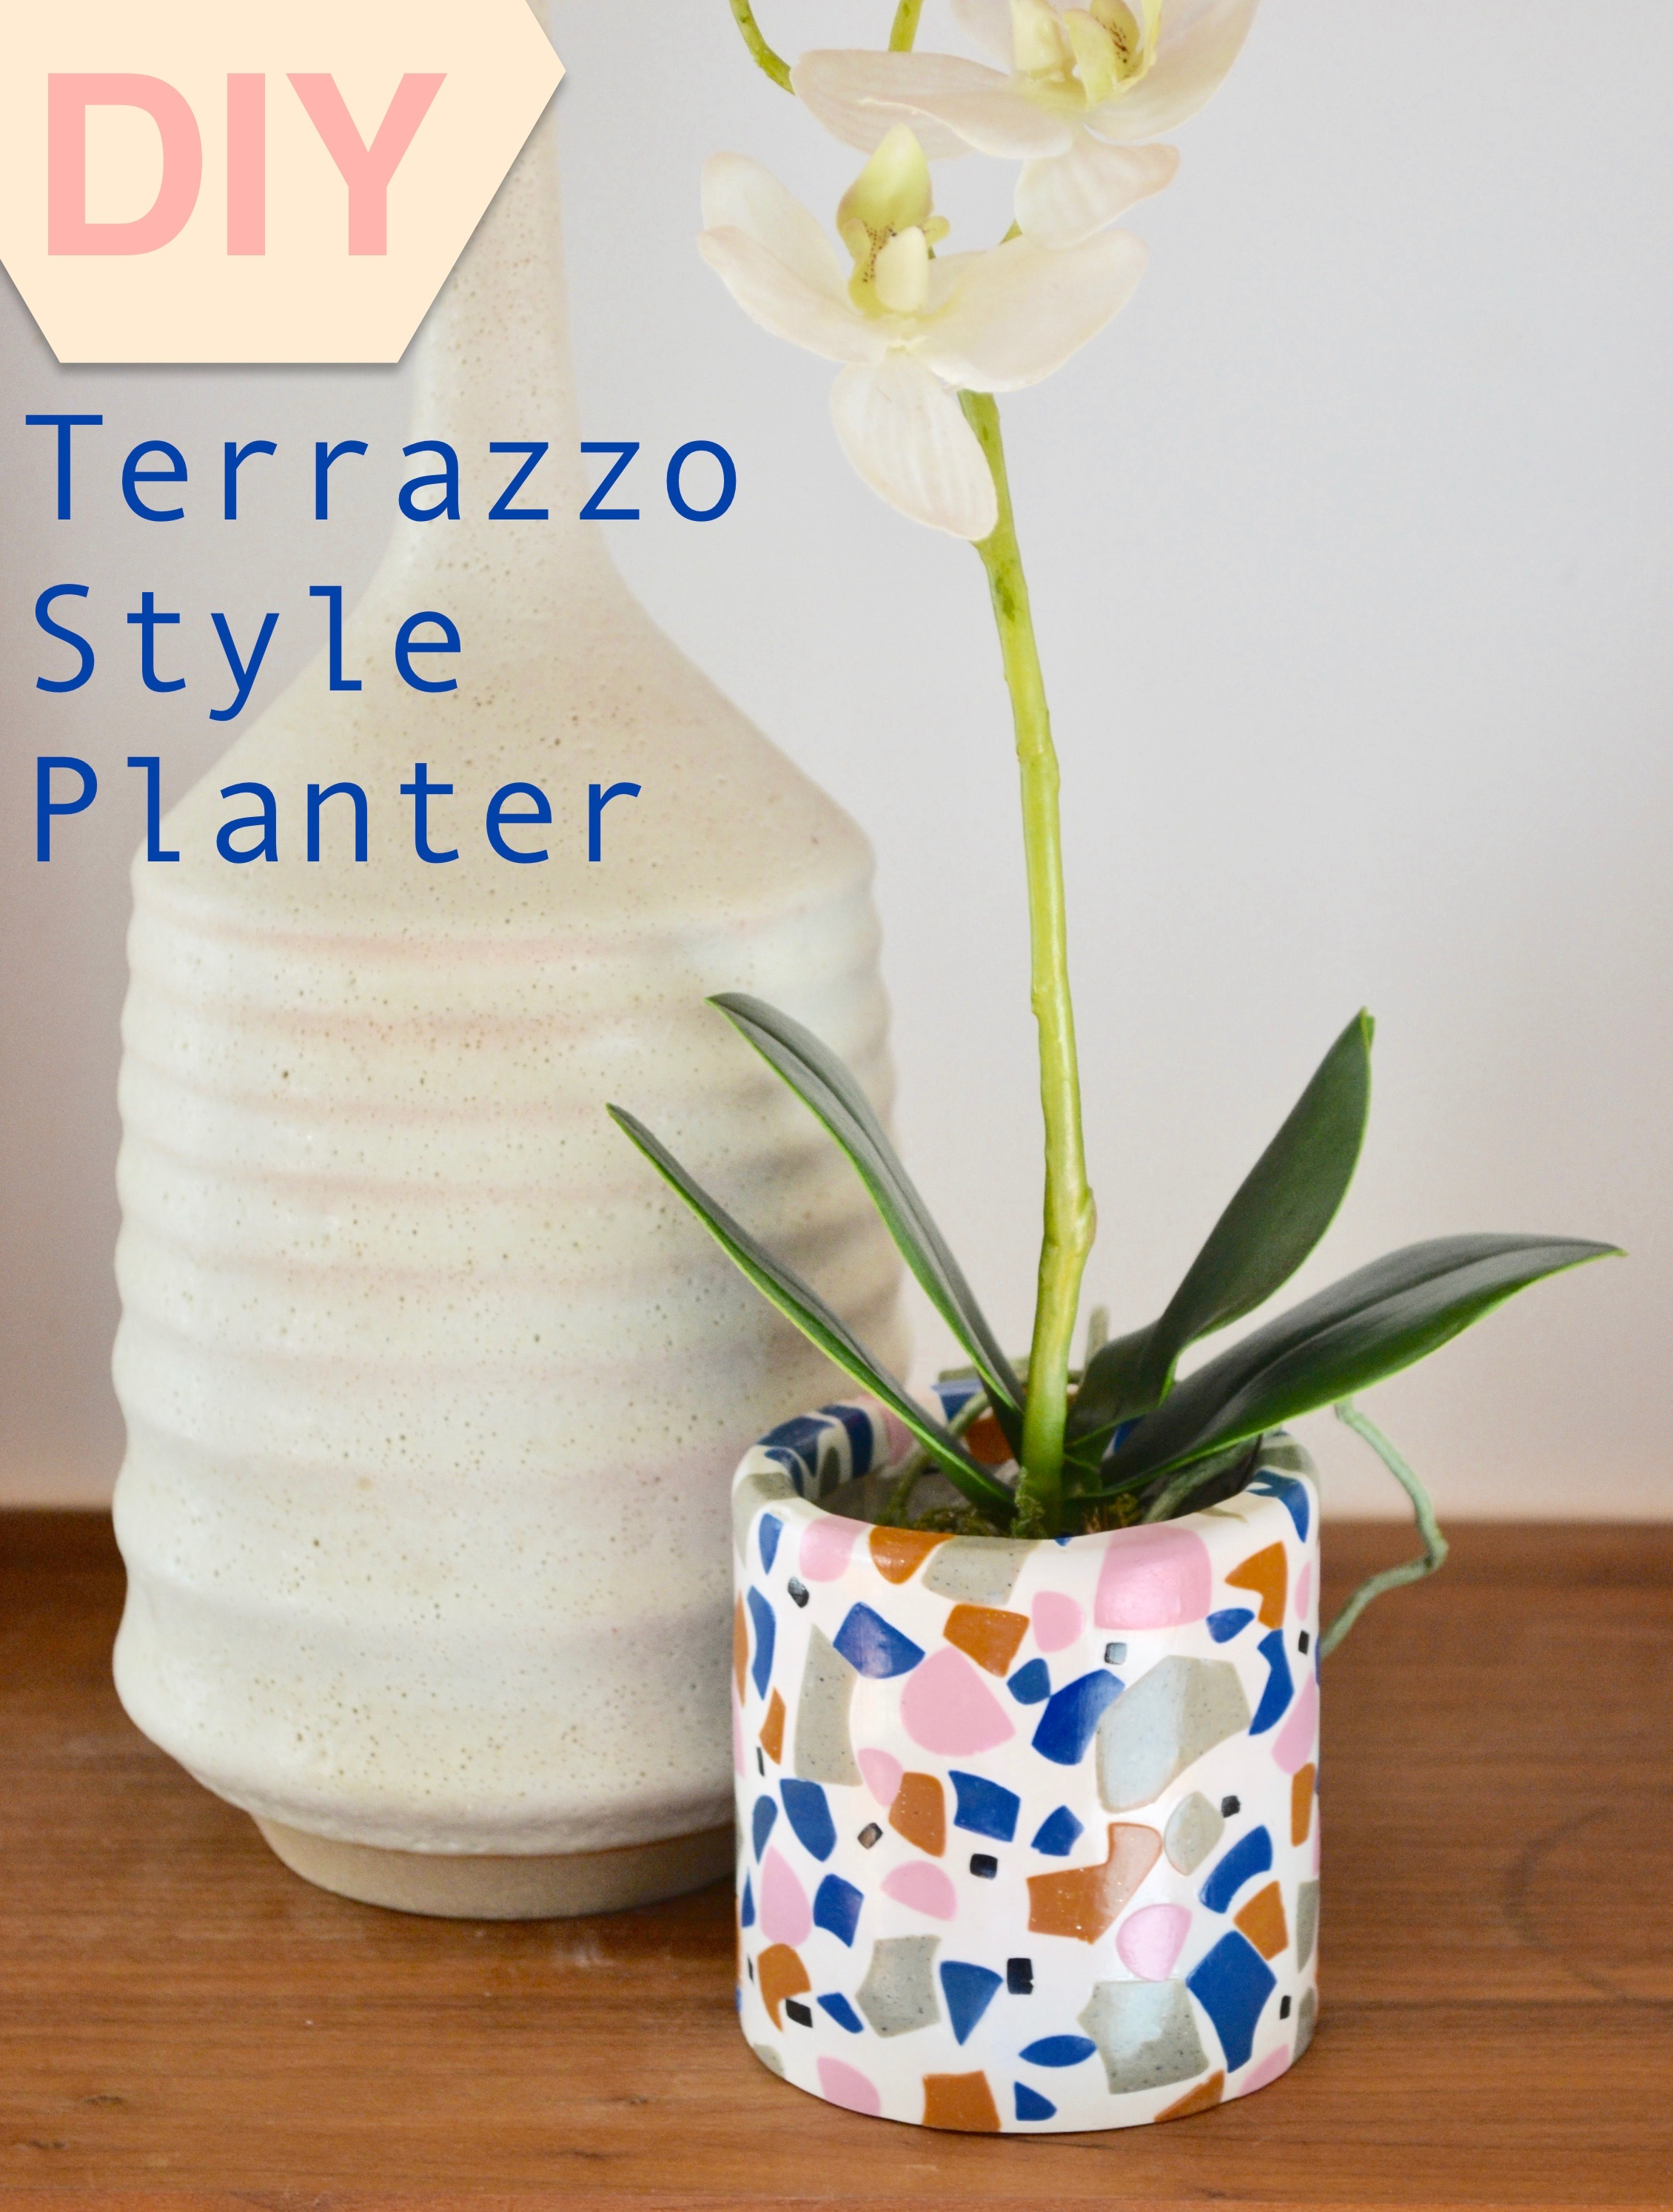 Make a DIY Terrazzo Style Planter from Polymer Clay